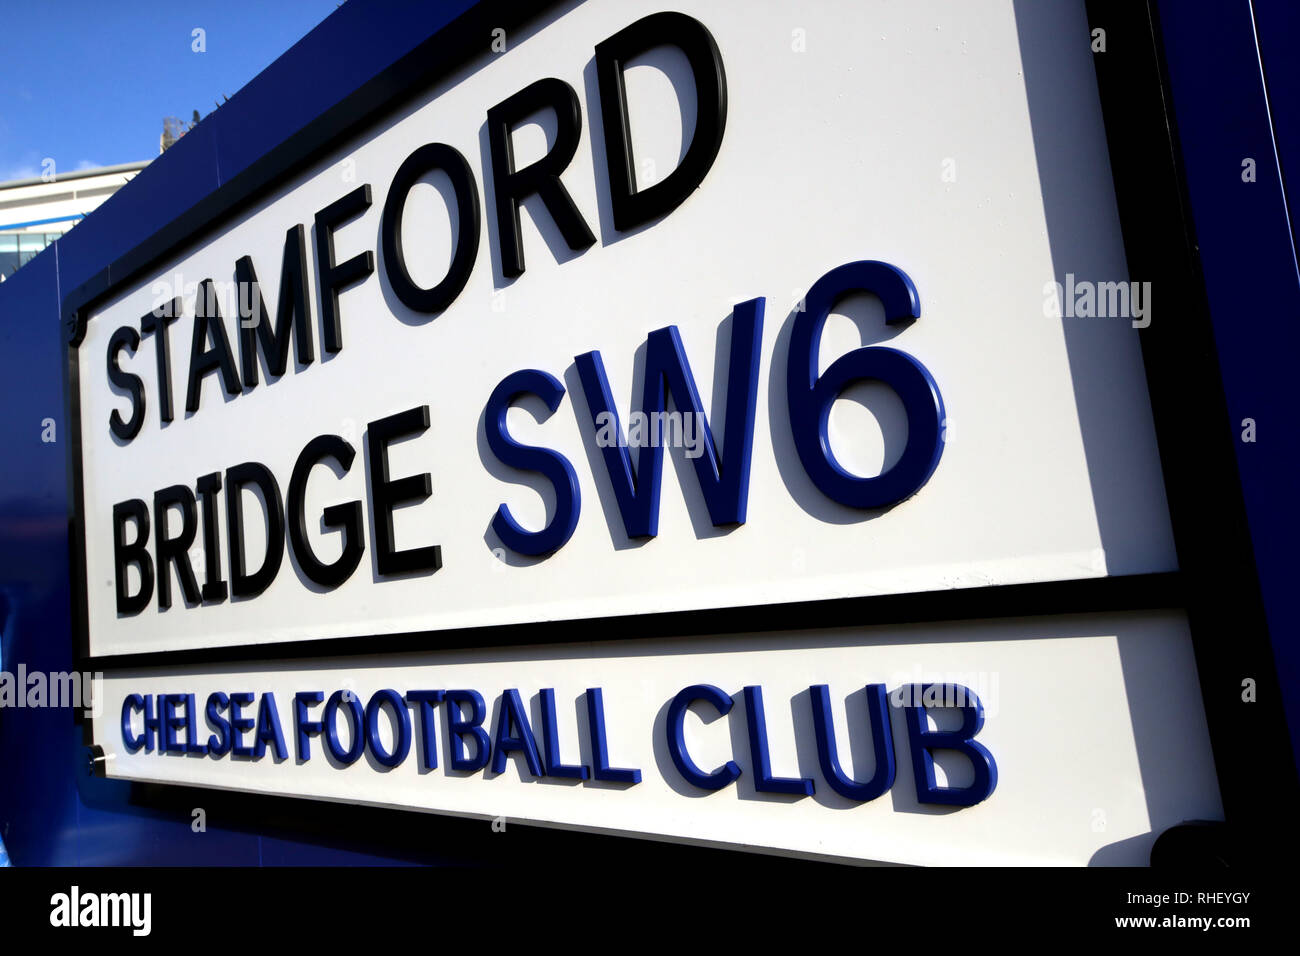 A general view of a Stamford Bridge sign prior to the